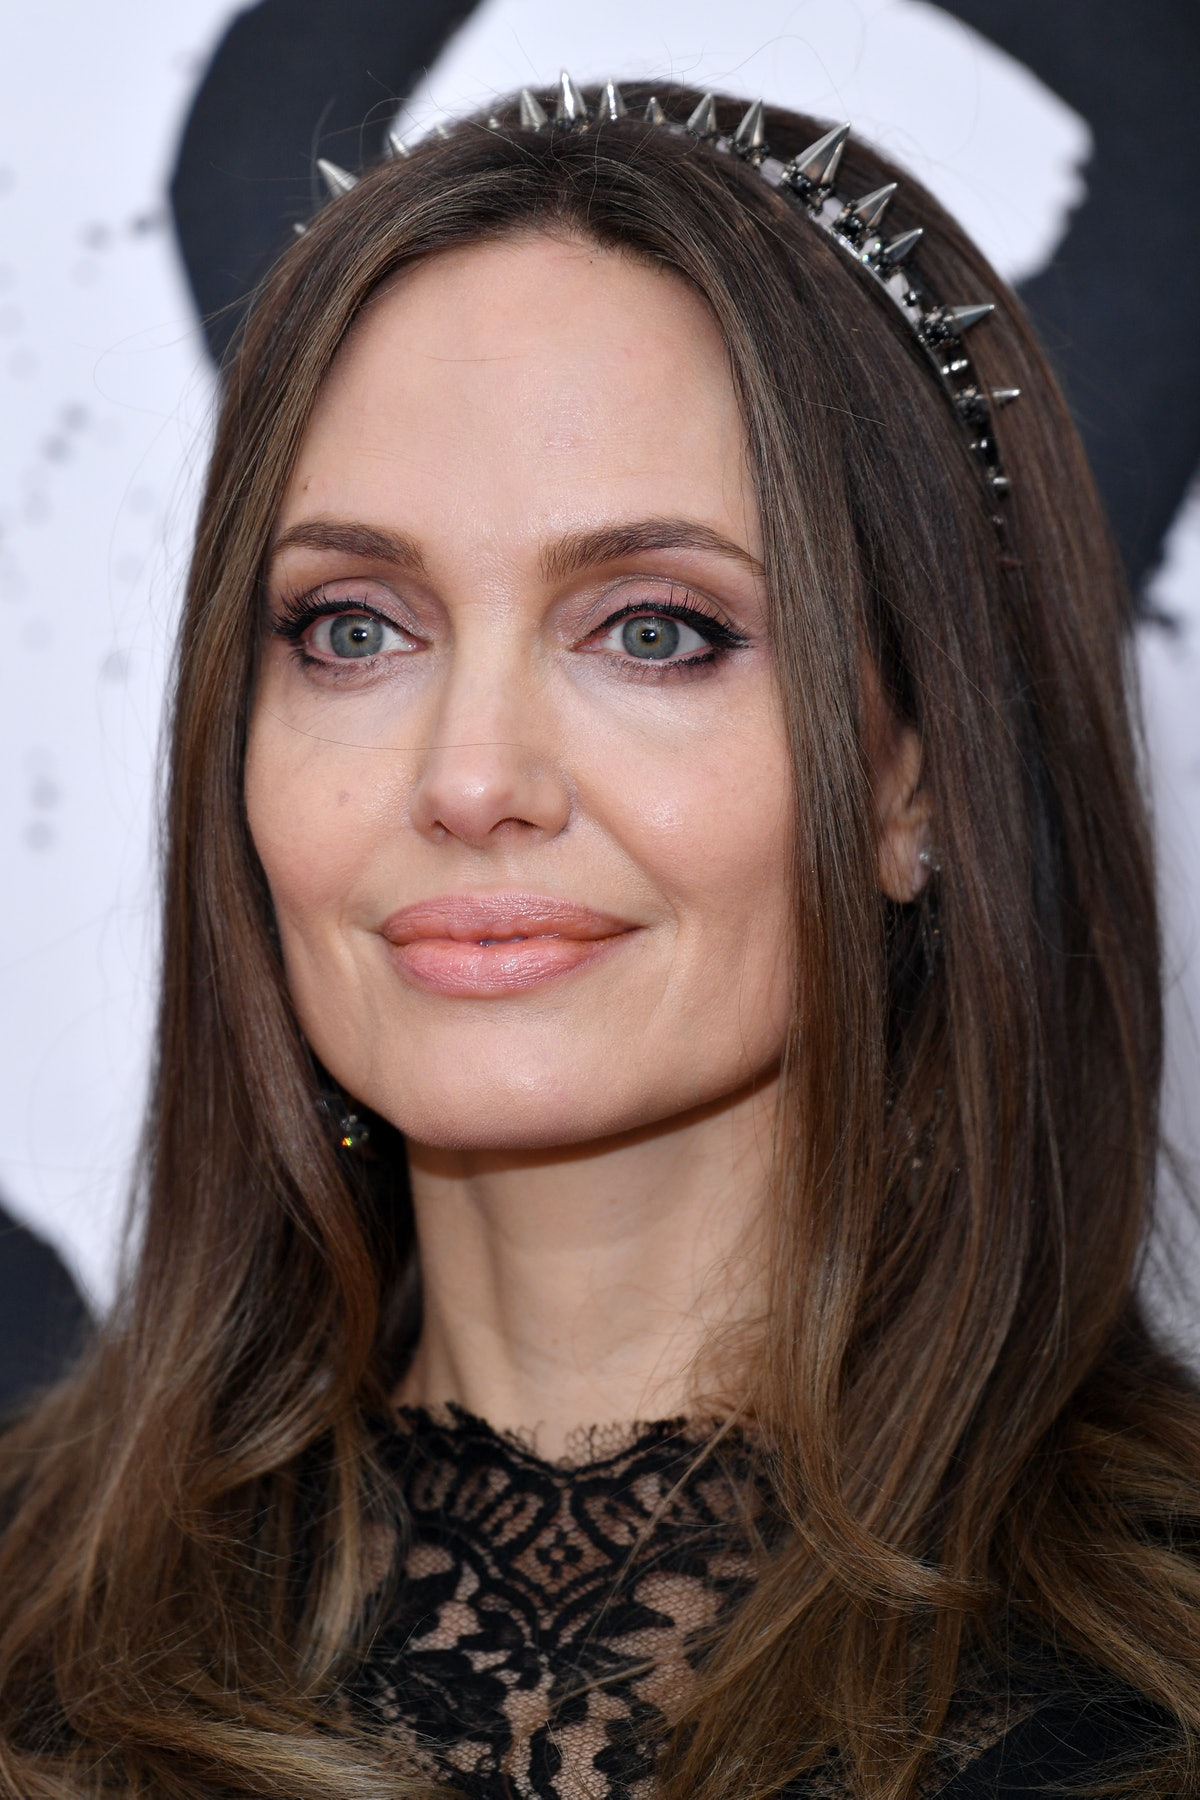 Night-out hairstyles inspired by Angelina Jolie